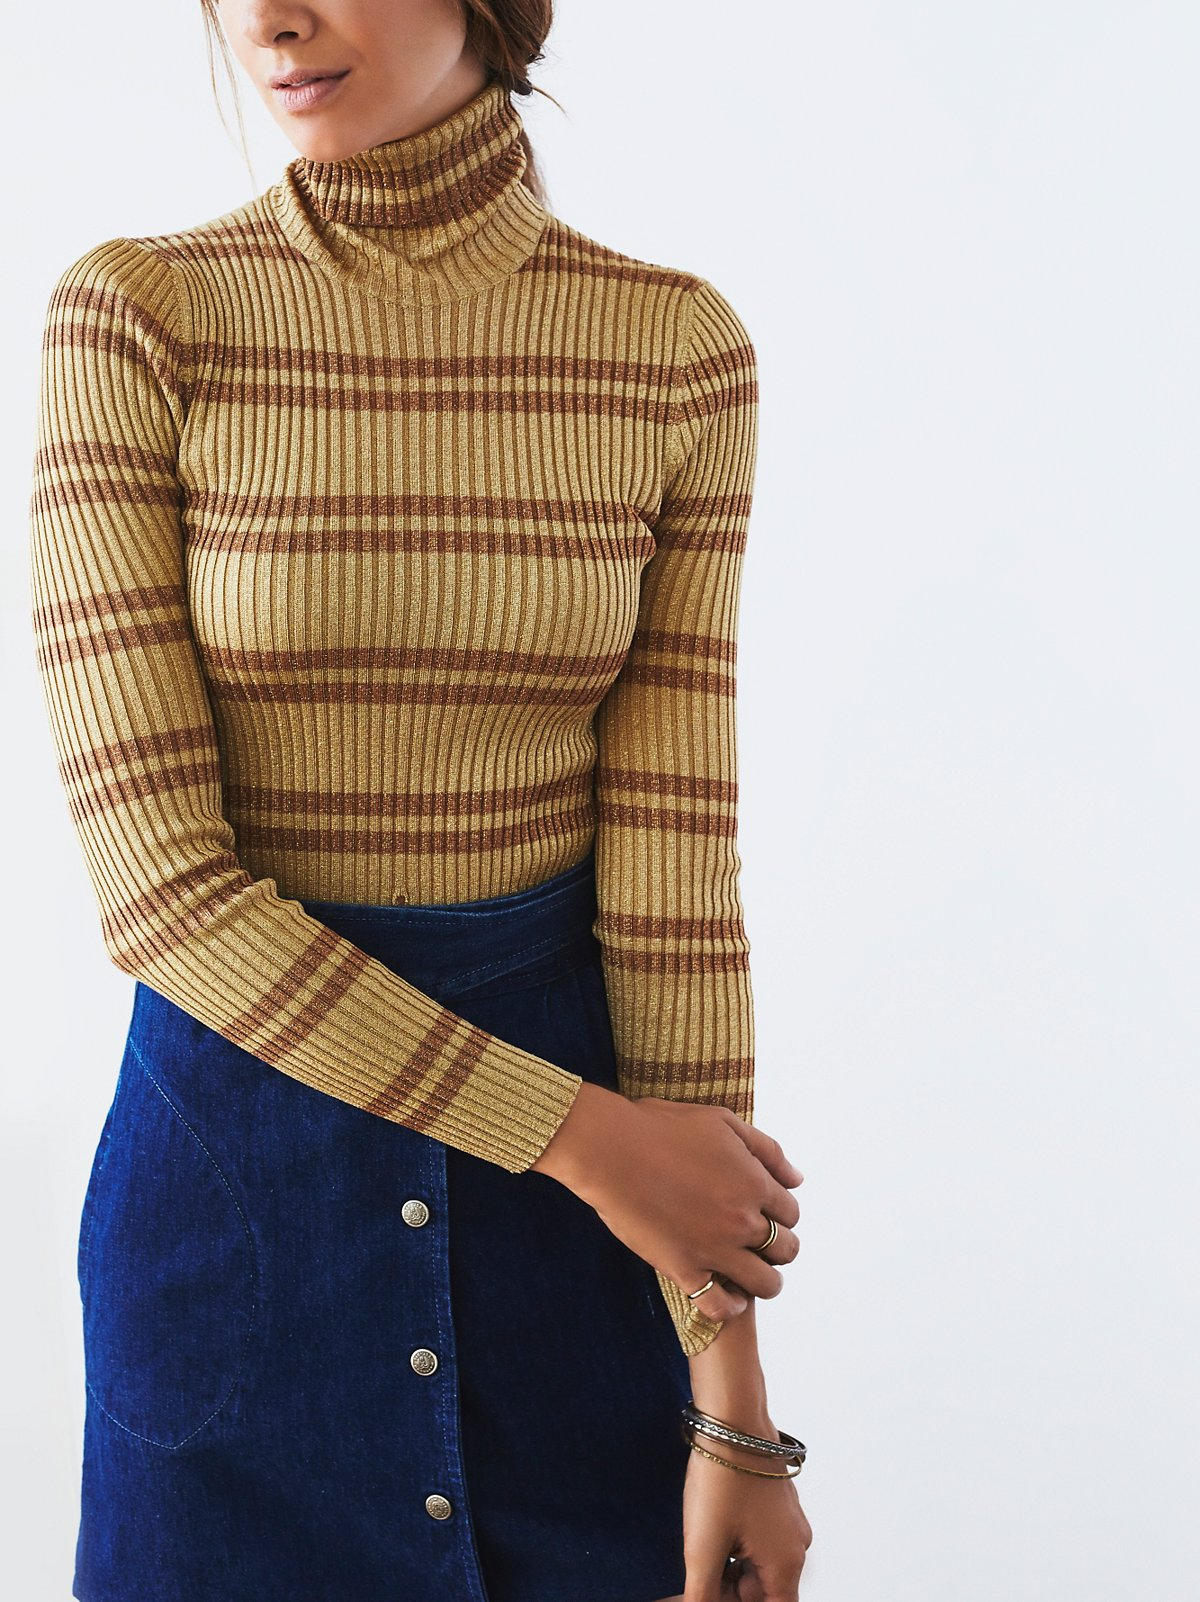 Vintage 1980s Ribbed Turtleneck